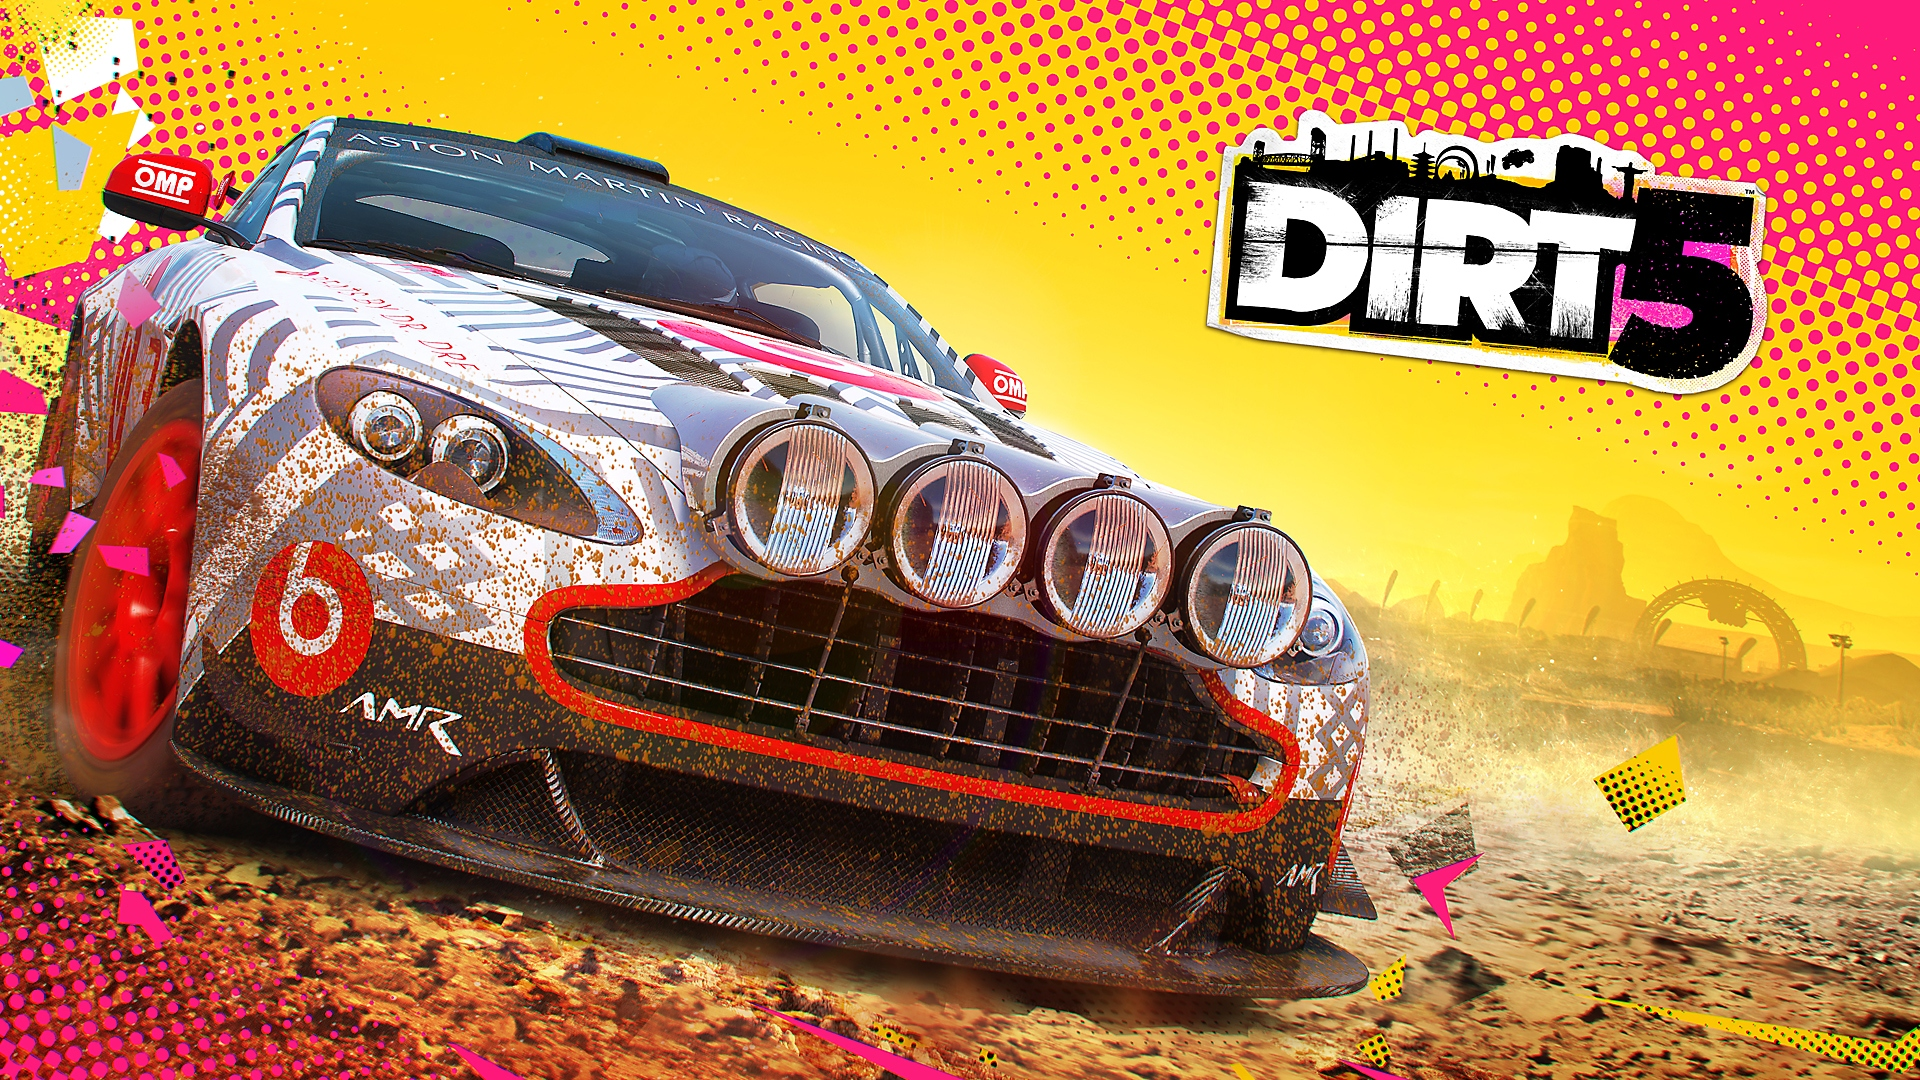 Dirt 5 – Key Art